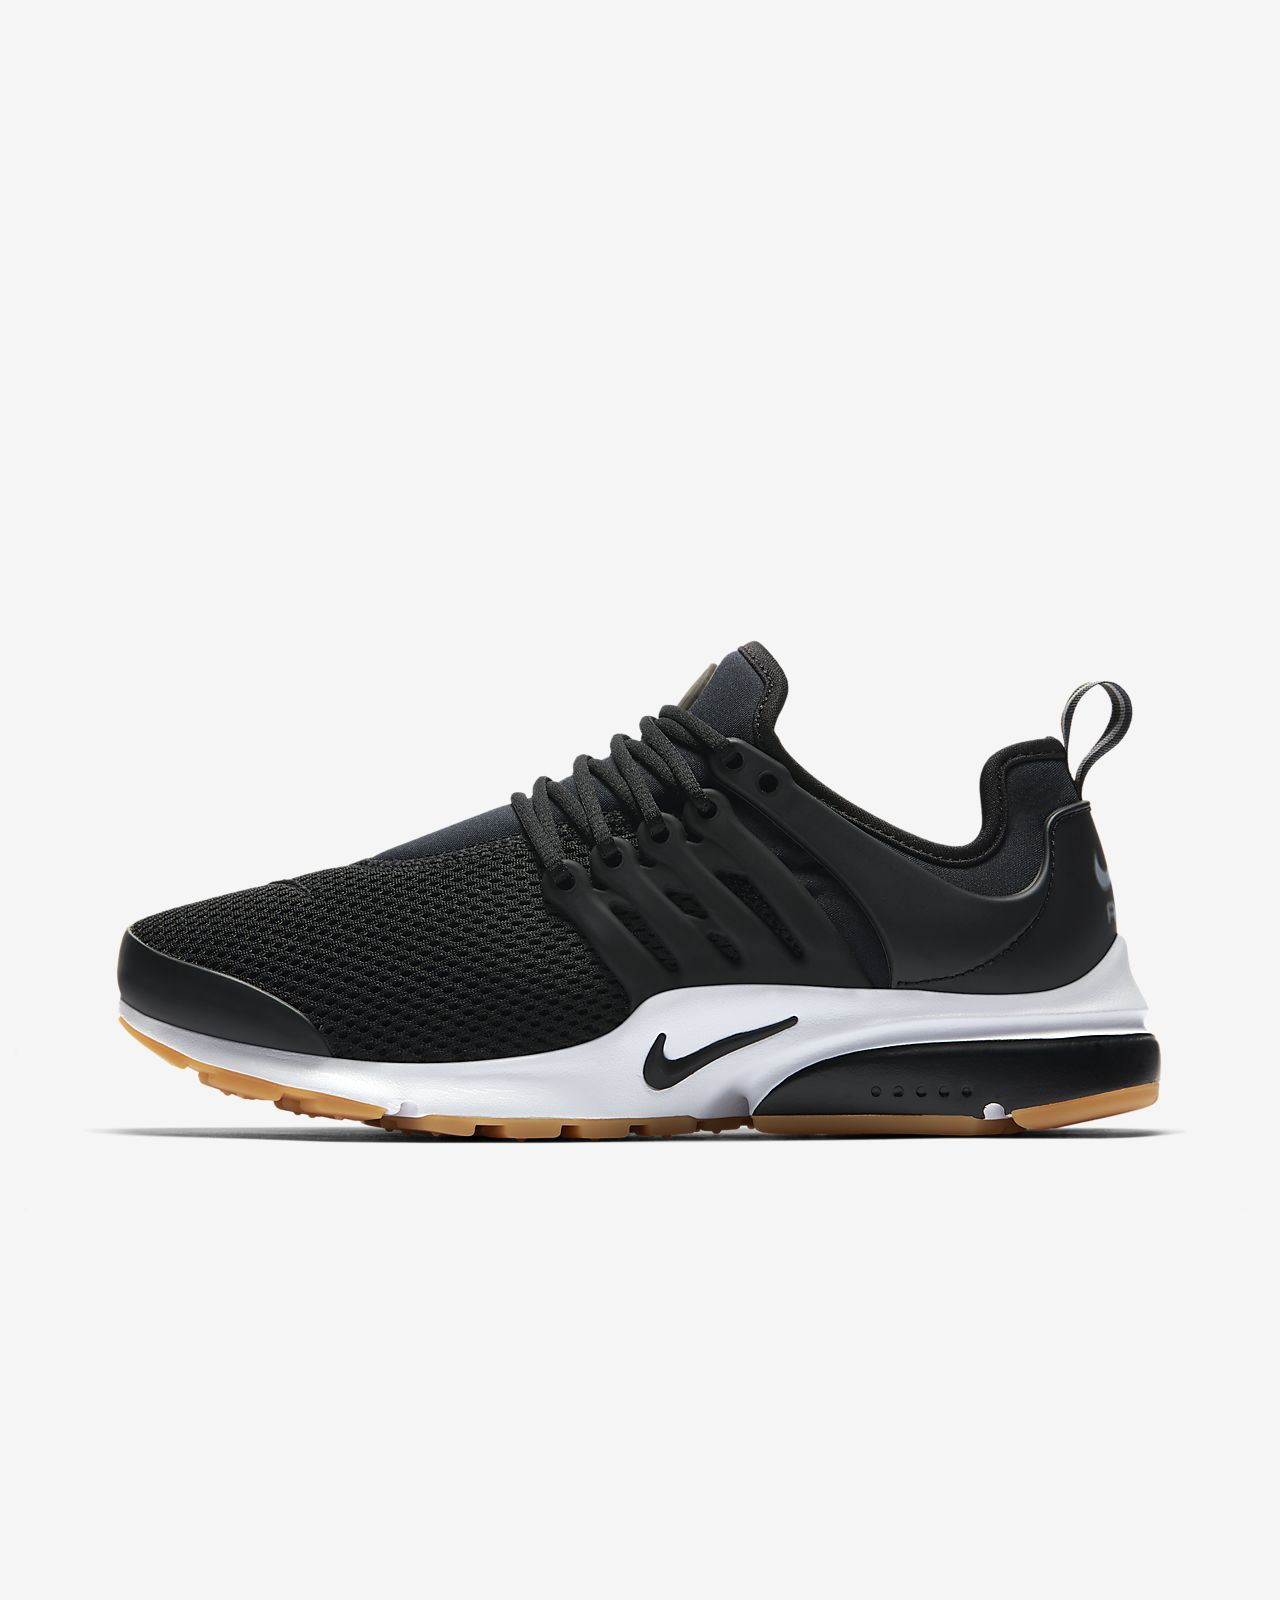 bdce54ba Nike Air Presto Women's Shoe